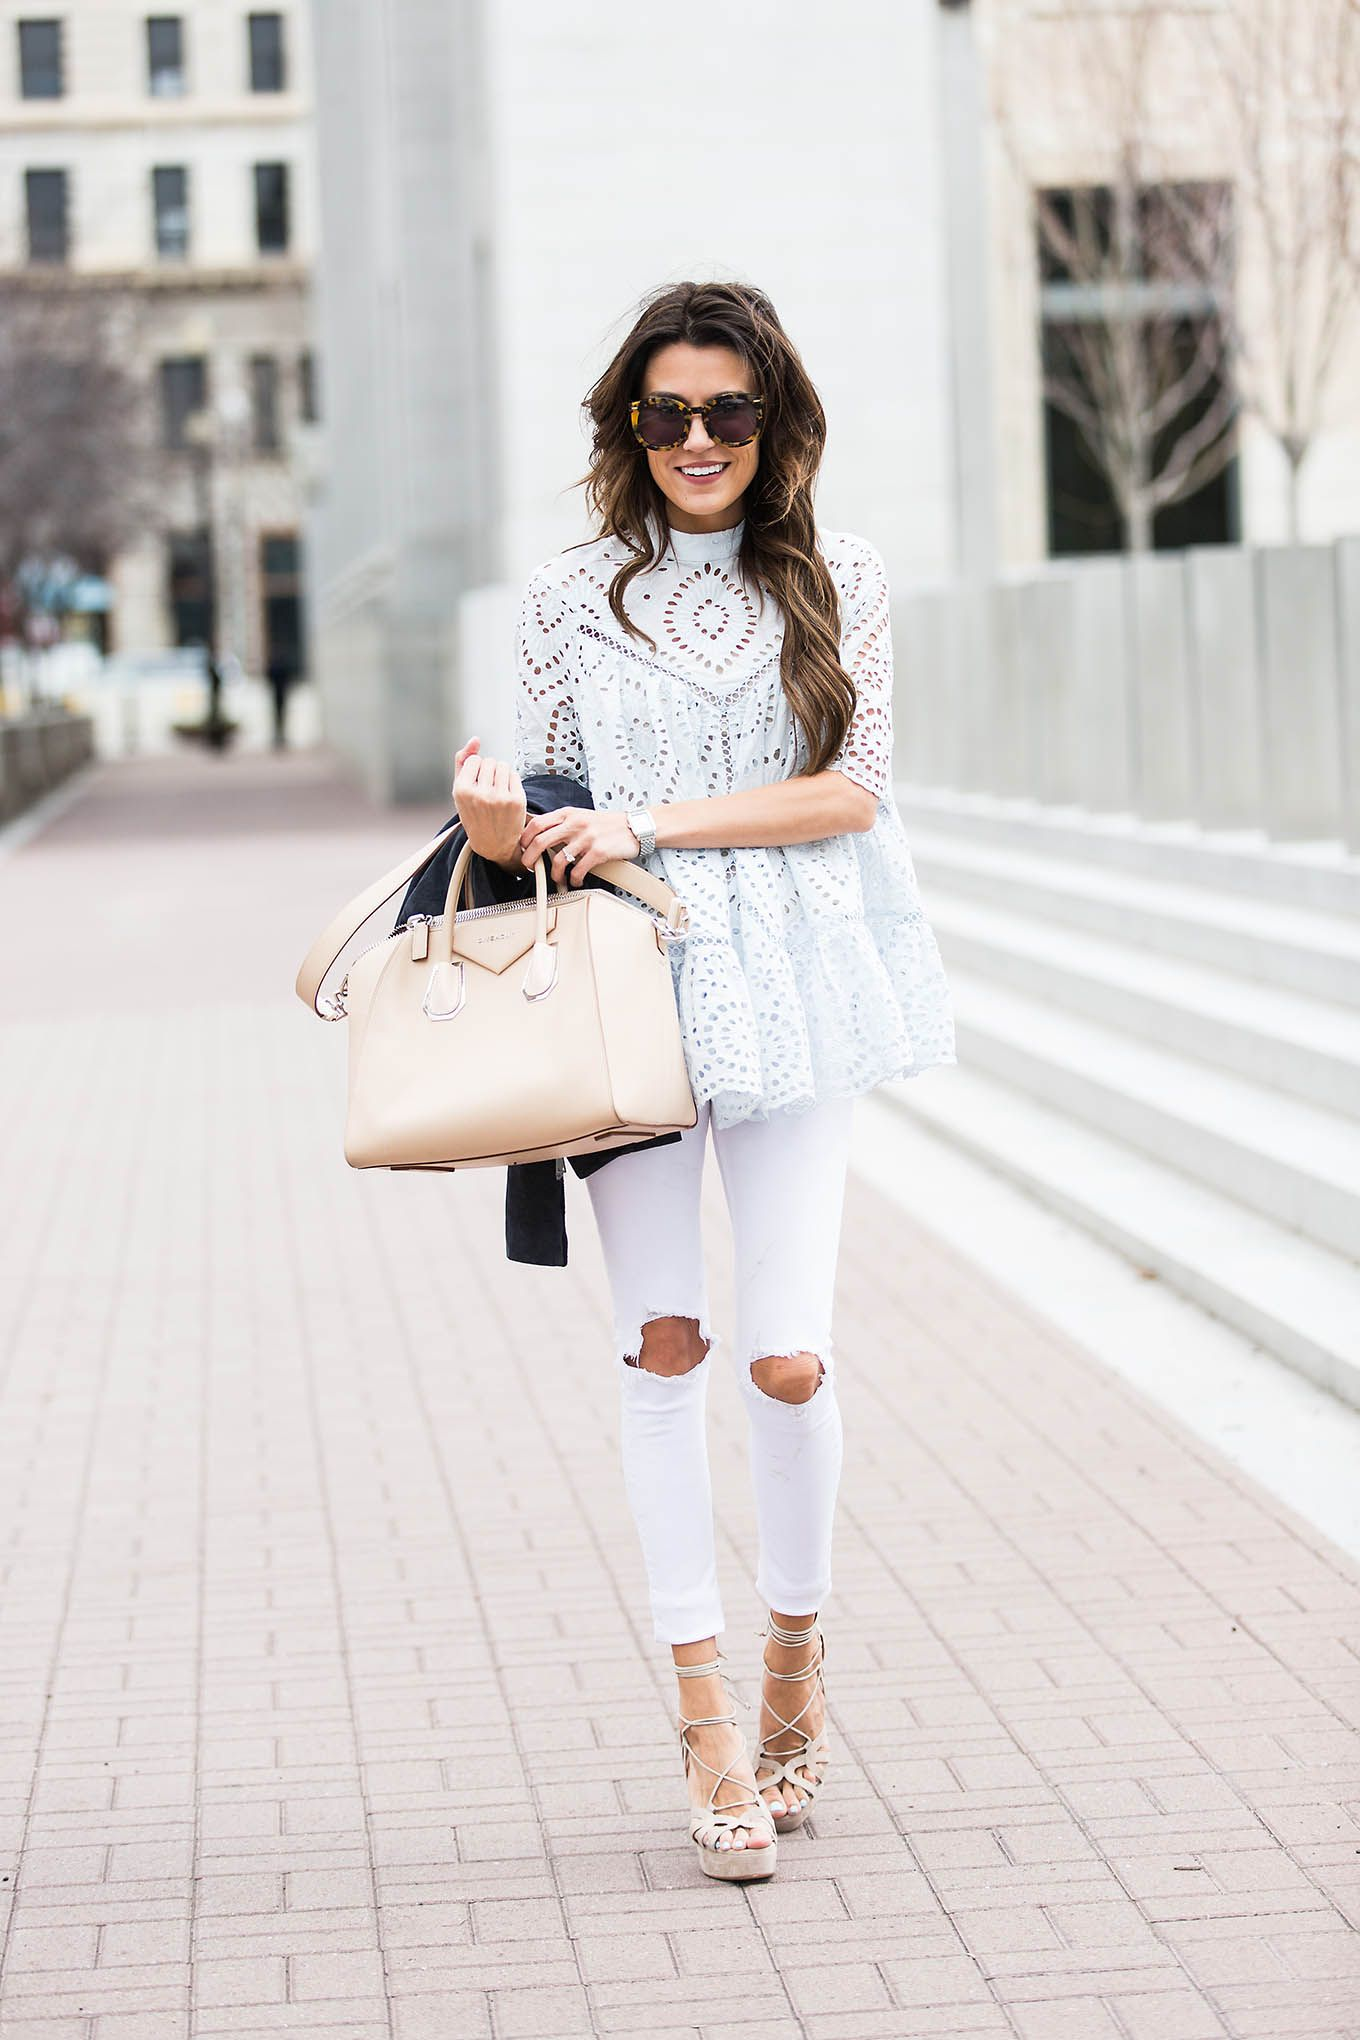 a83f236ef8 ... White Shirt and Beige Sandals. The Must-Have Statement Sandal For  Spring